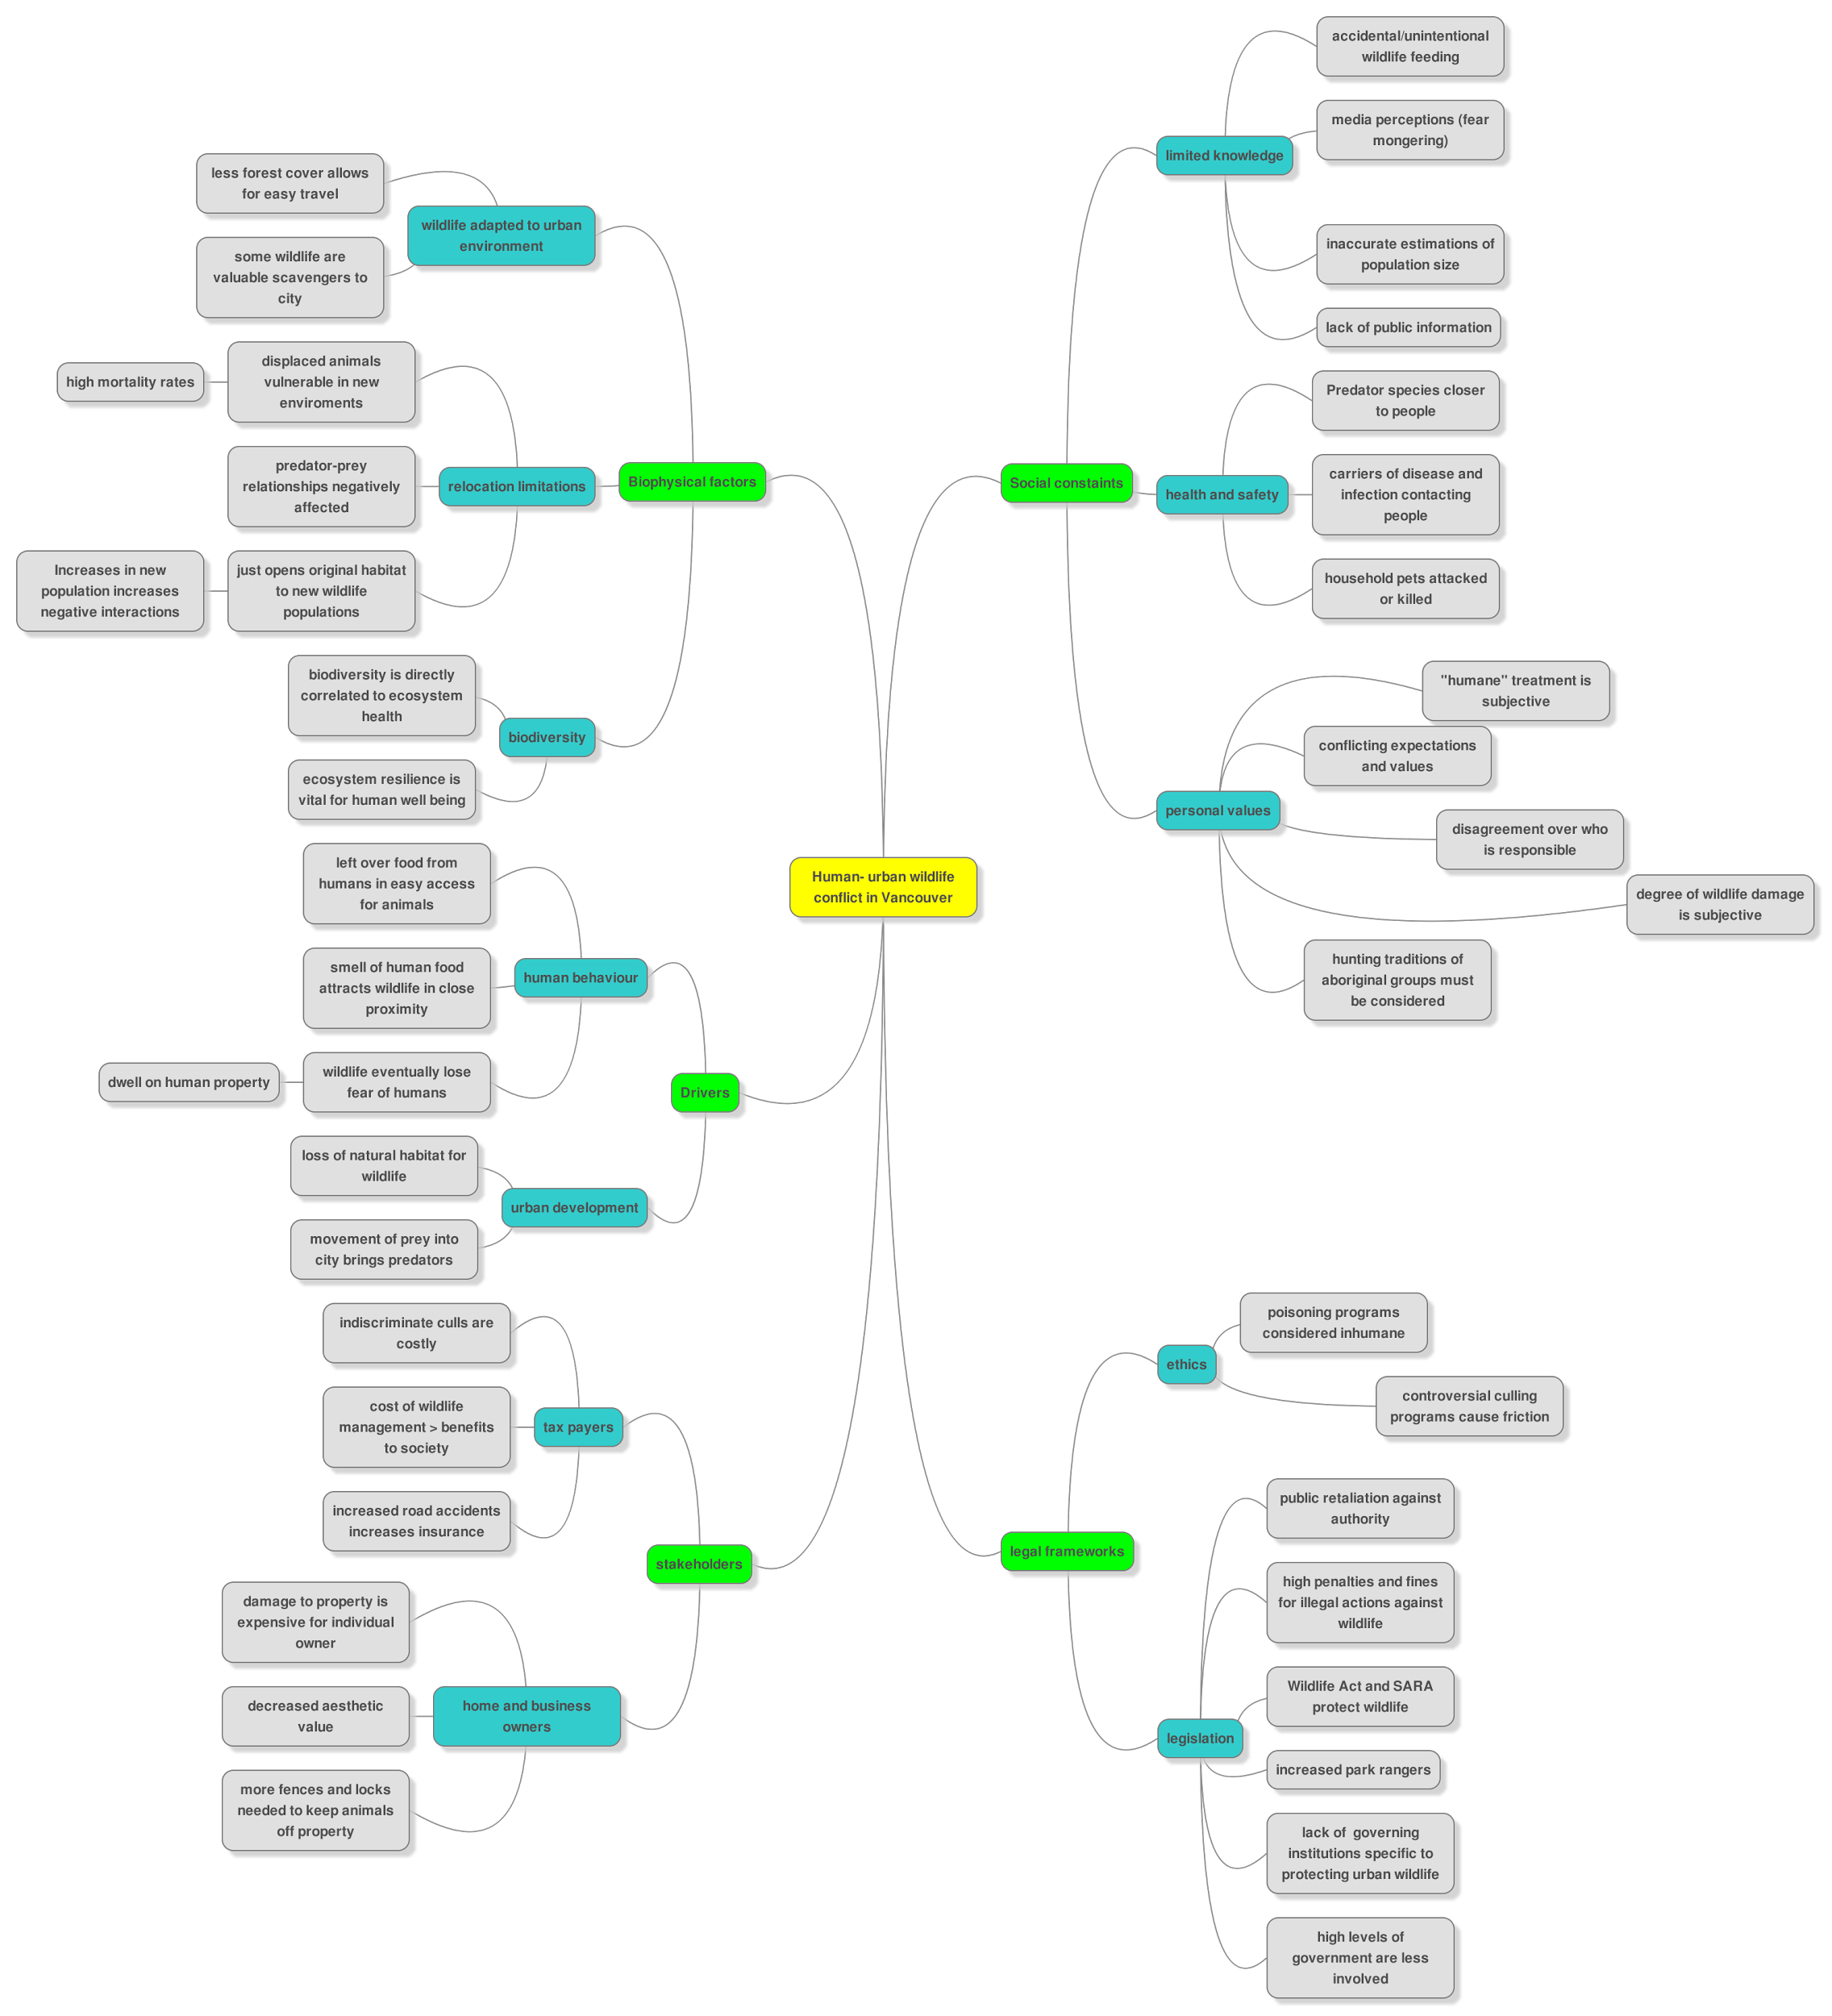 Figure 6 - mind map illustrating connections between varying dimensions of this wicked problem.